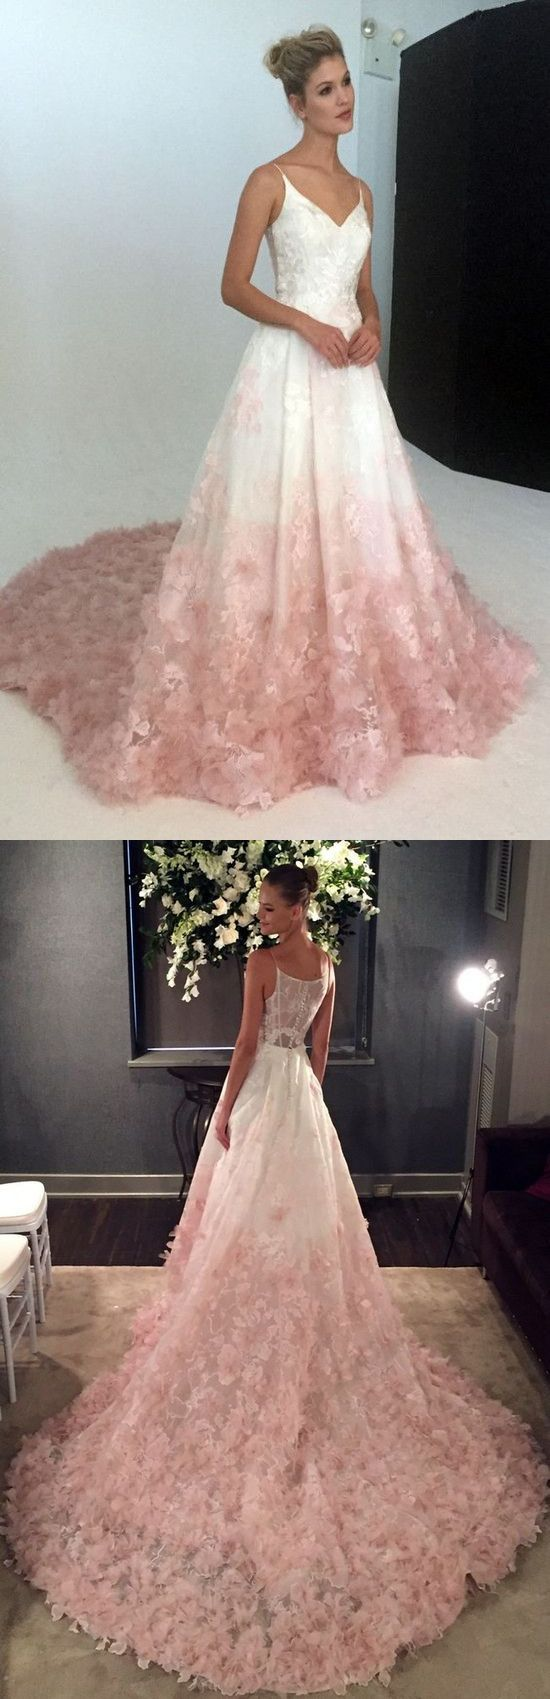 elegant straps white and pink long prom dress wedding dress | <Prom ...